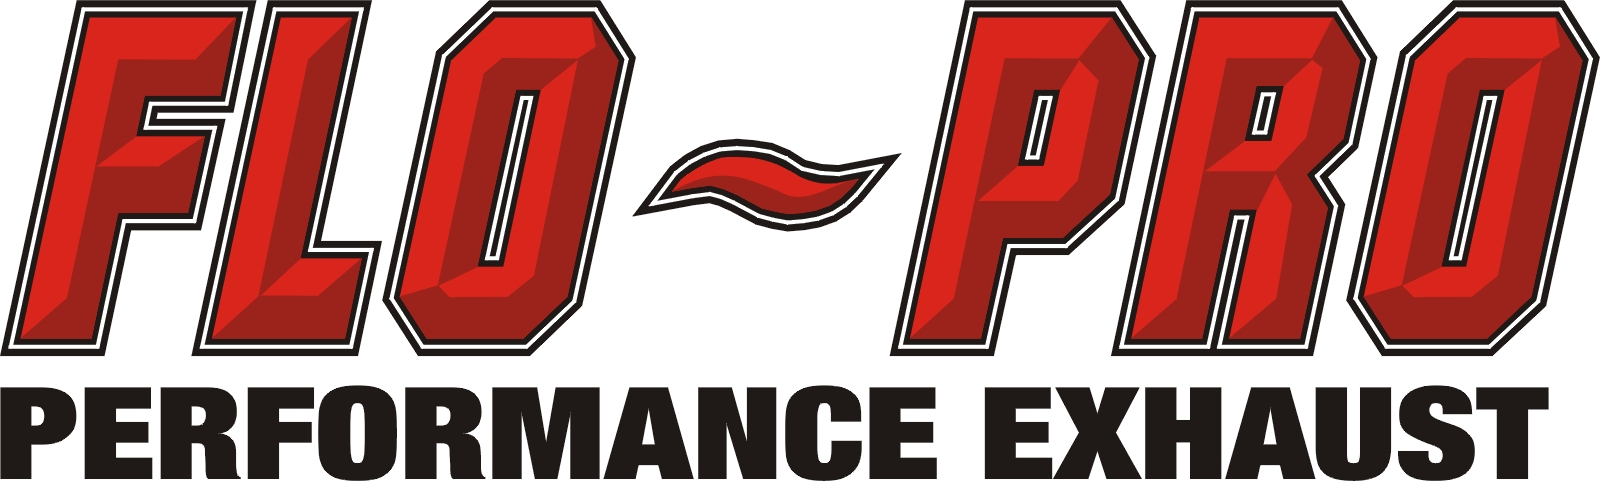 Flo Pro High Performance Exhaust Parts